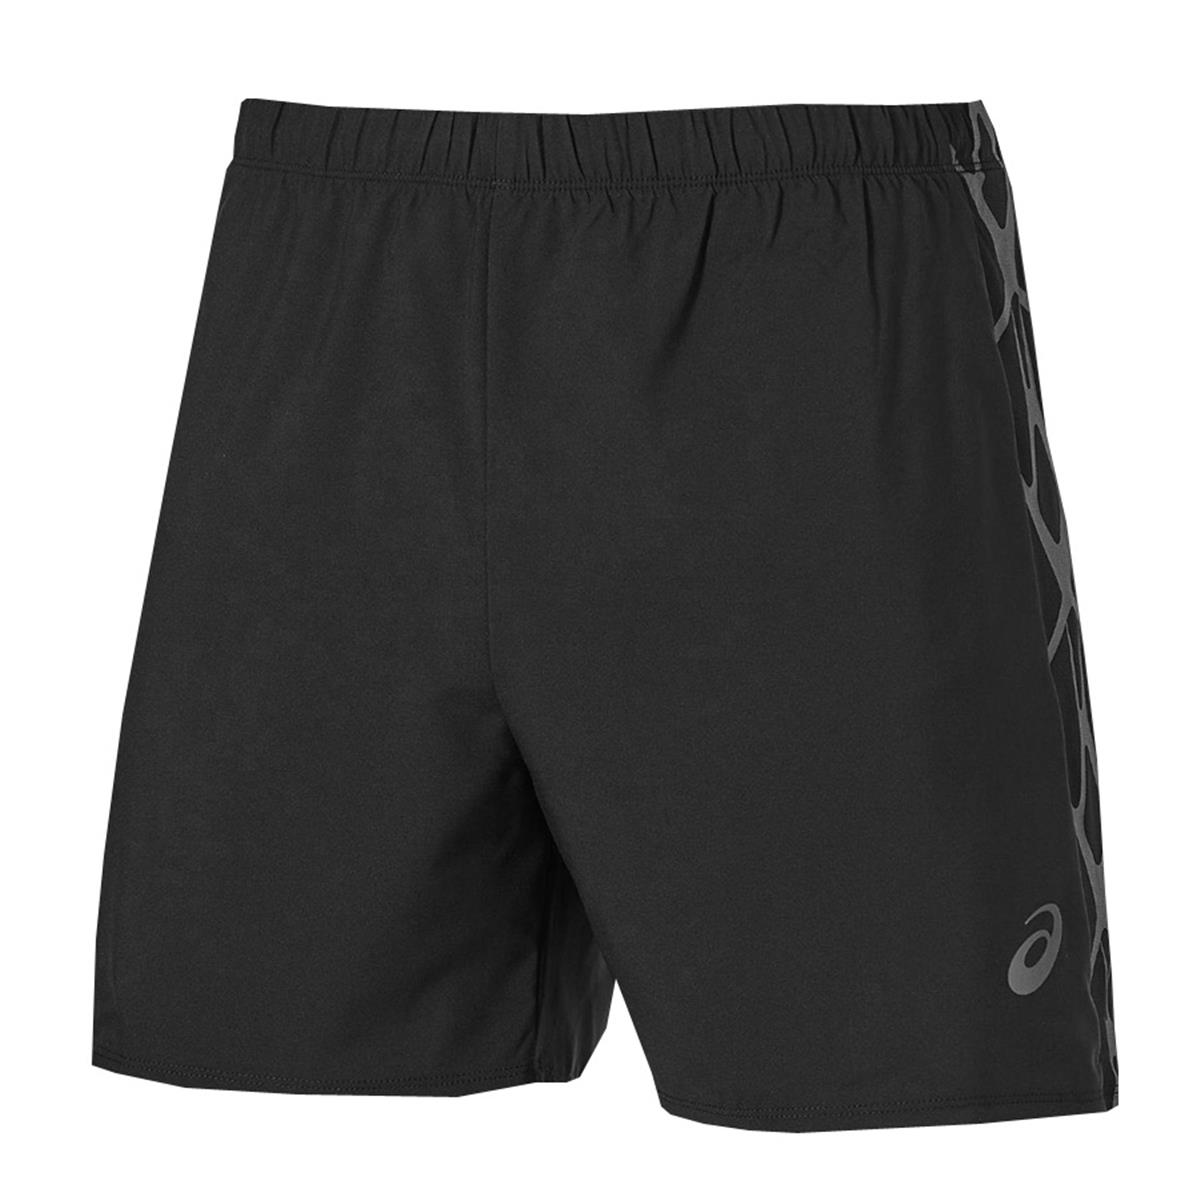 0f39035b287 Asics 5 Inch Mens Running Shorts | Direct Running